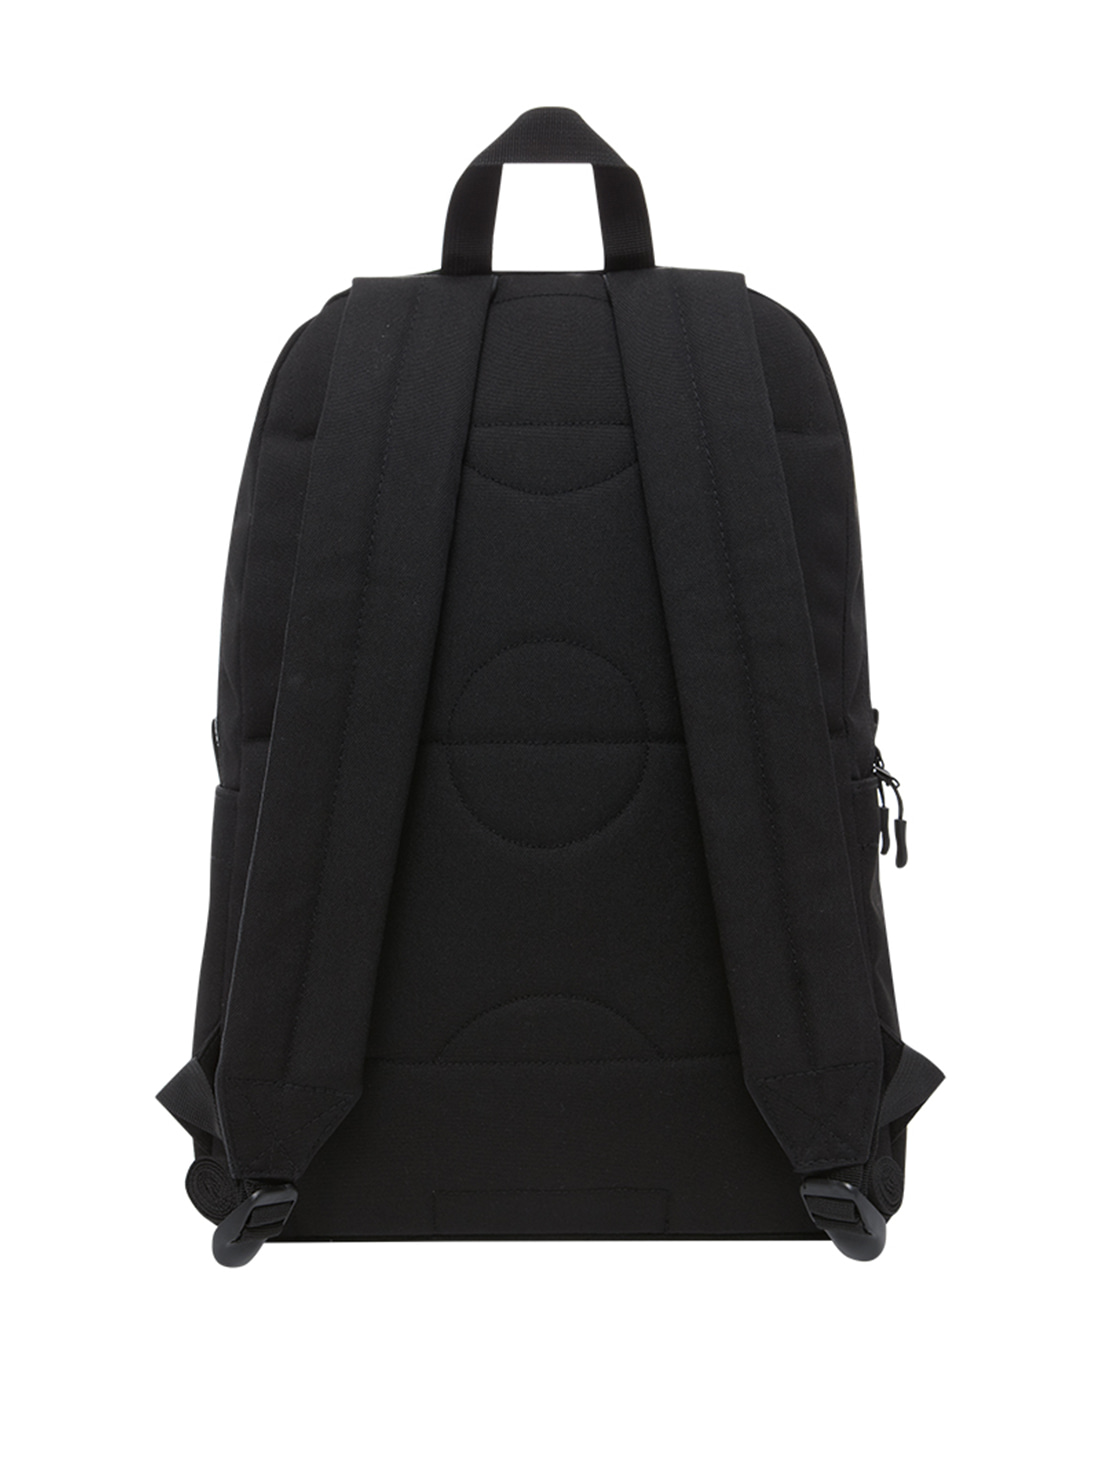 GOAL SUEDE BACKPACK